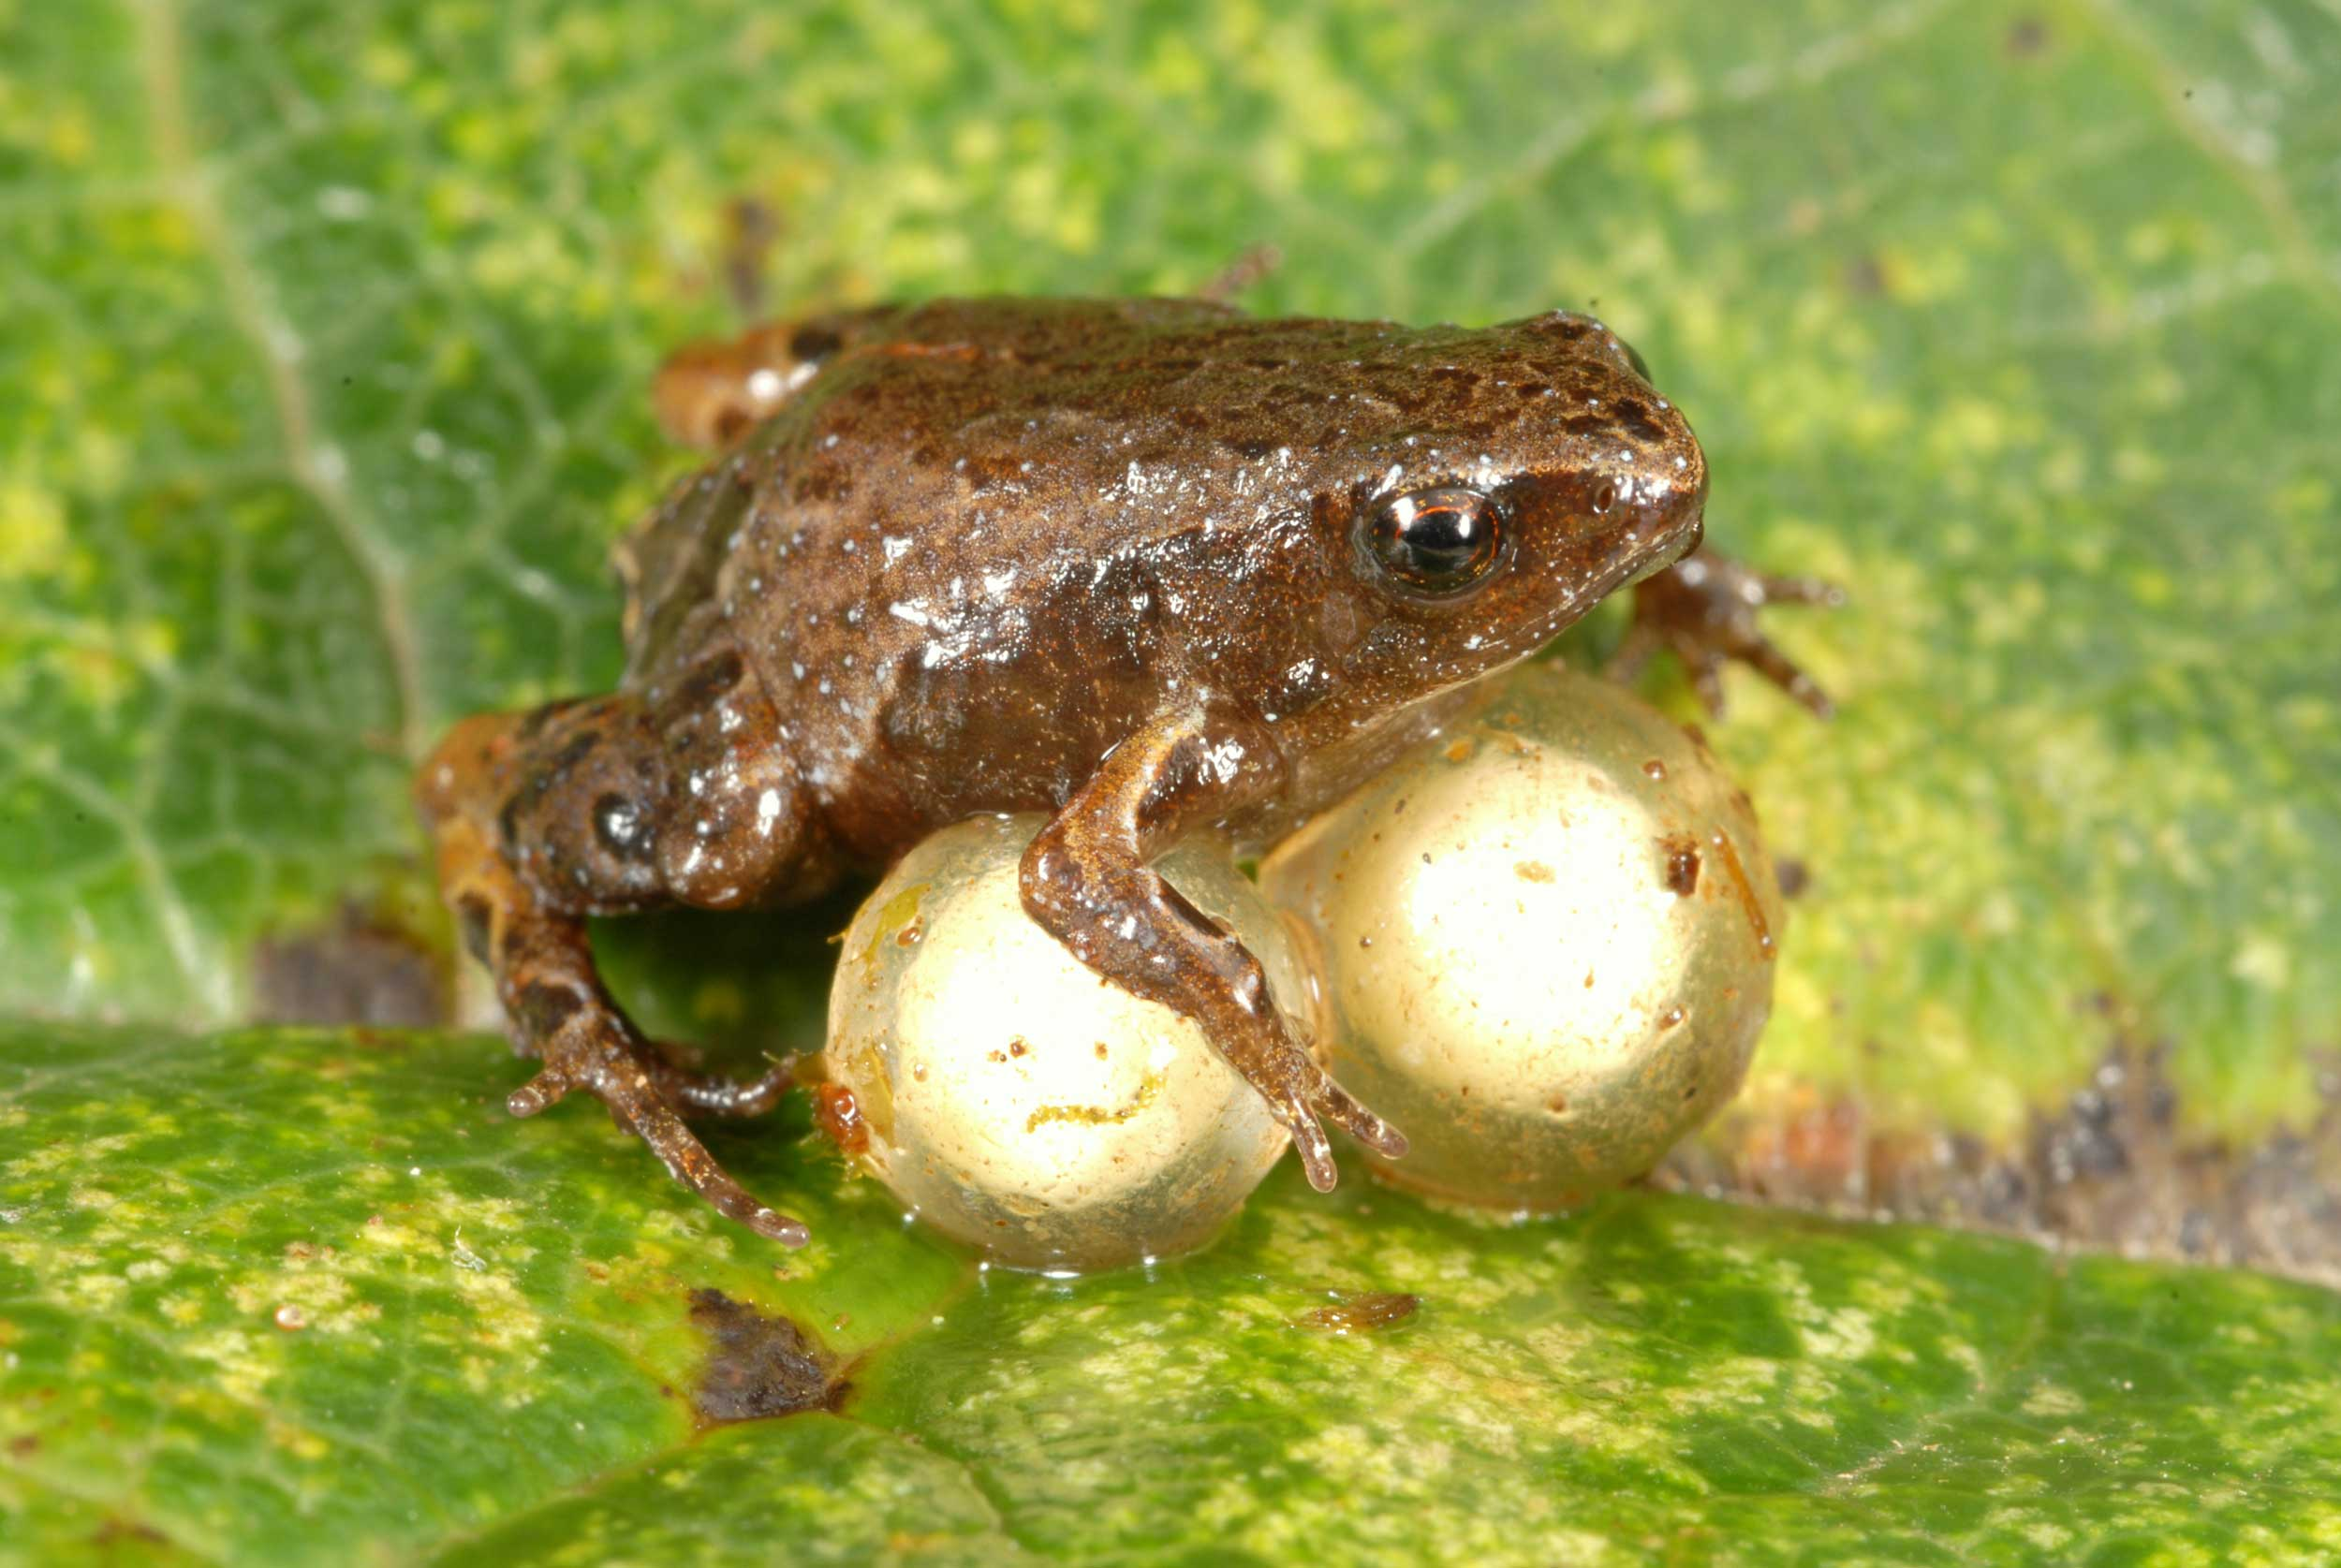 Another species included in the Peruvian frog study was Noblella pygmaea, the smallest frog of the Andes, seen here guarding a clutch of two eggs. These frogs are found in the leaf litter of cloud forest and elfin forest at elevations between 8,934 and 10,990 feet. Adults typically range in size from 0.41 to 0.56 inches (1.03 - 1.42 centimeters). Image credit: Alessandro Catenazzi